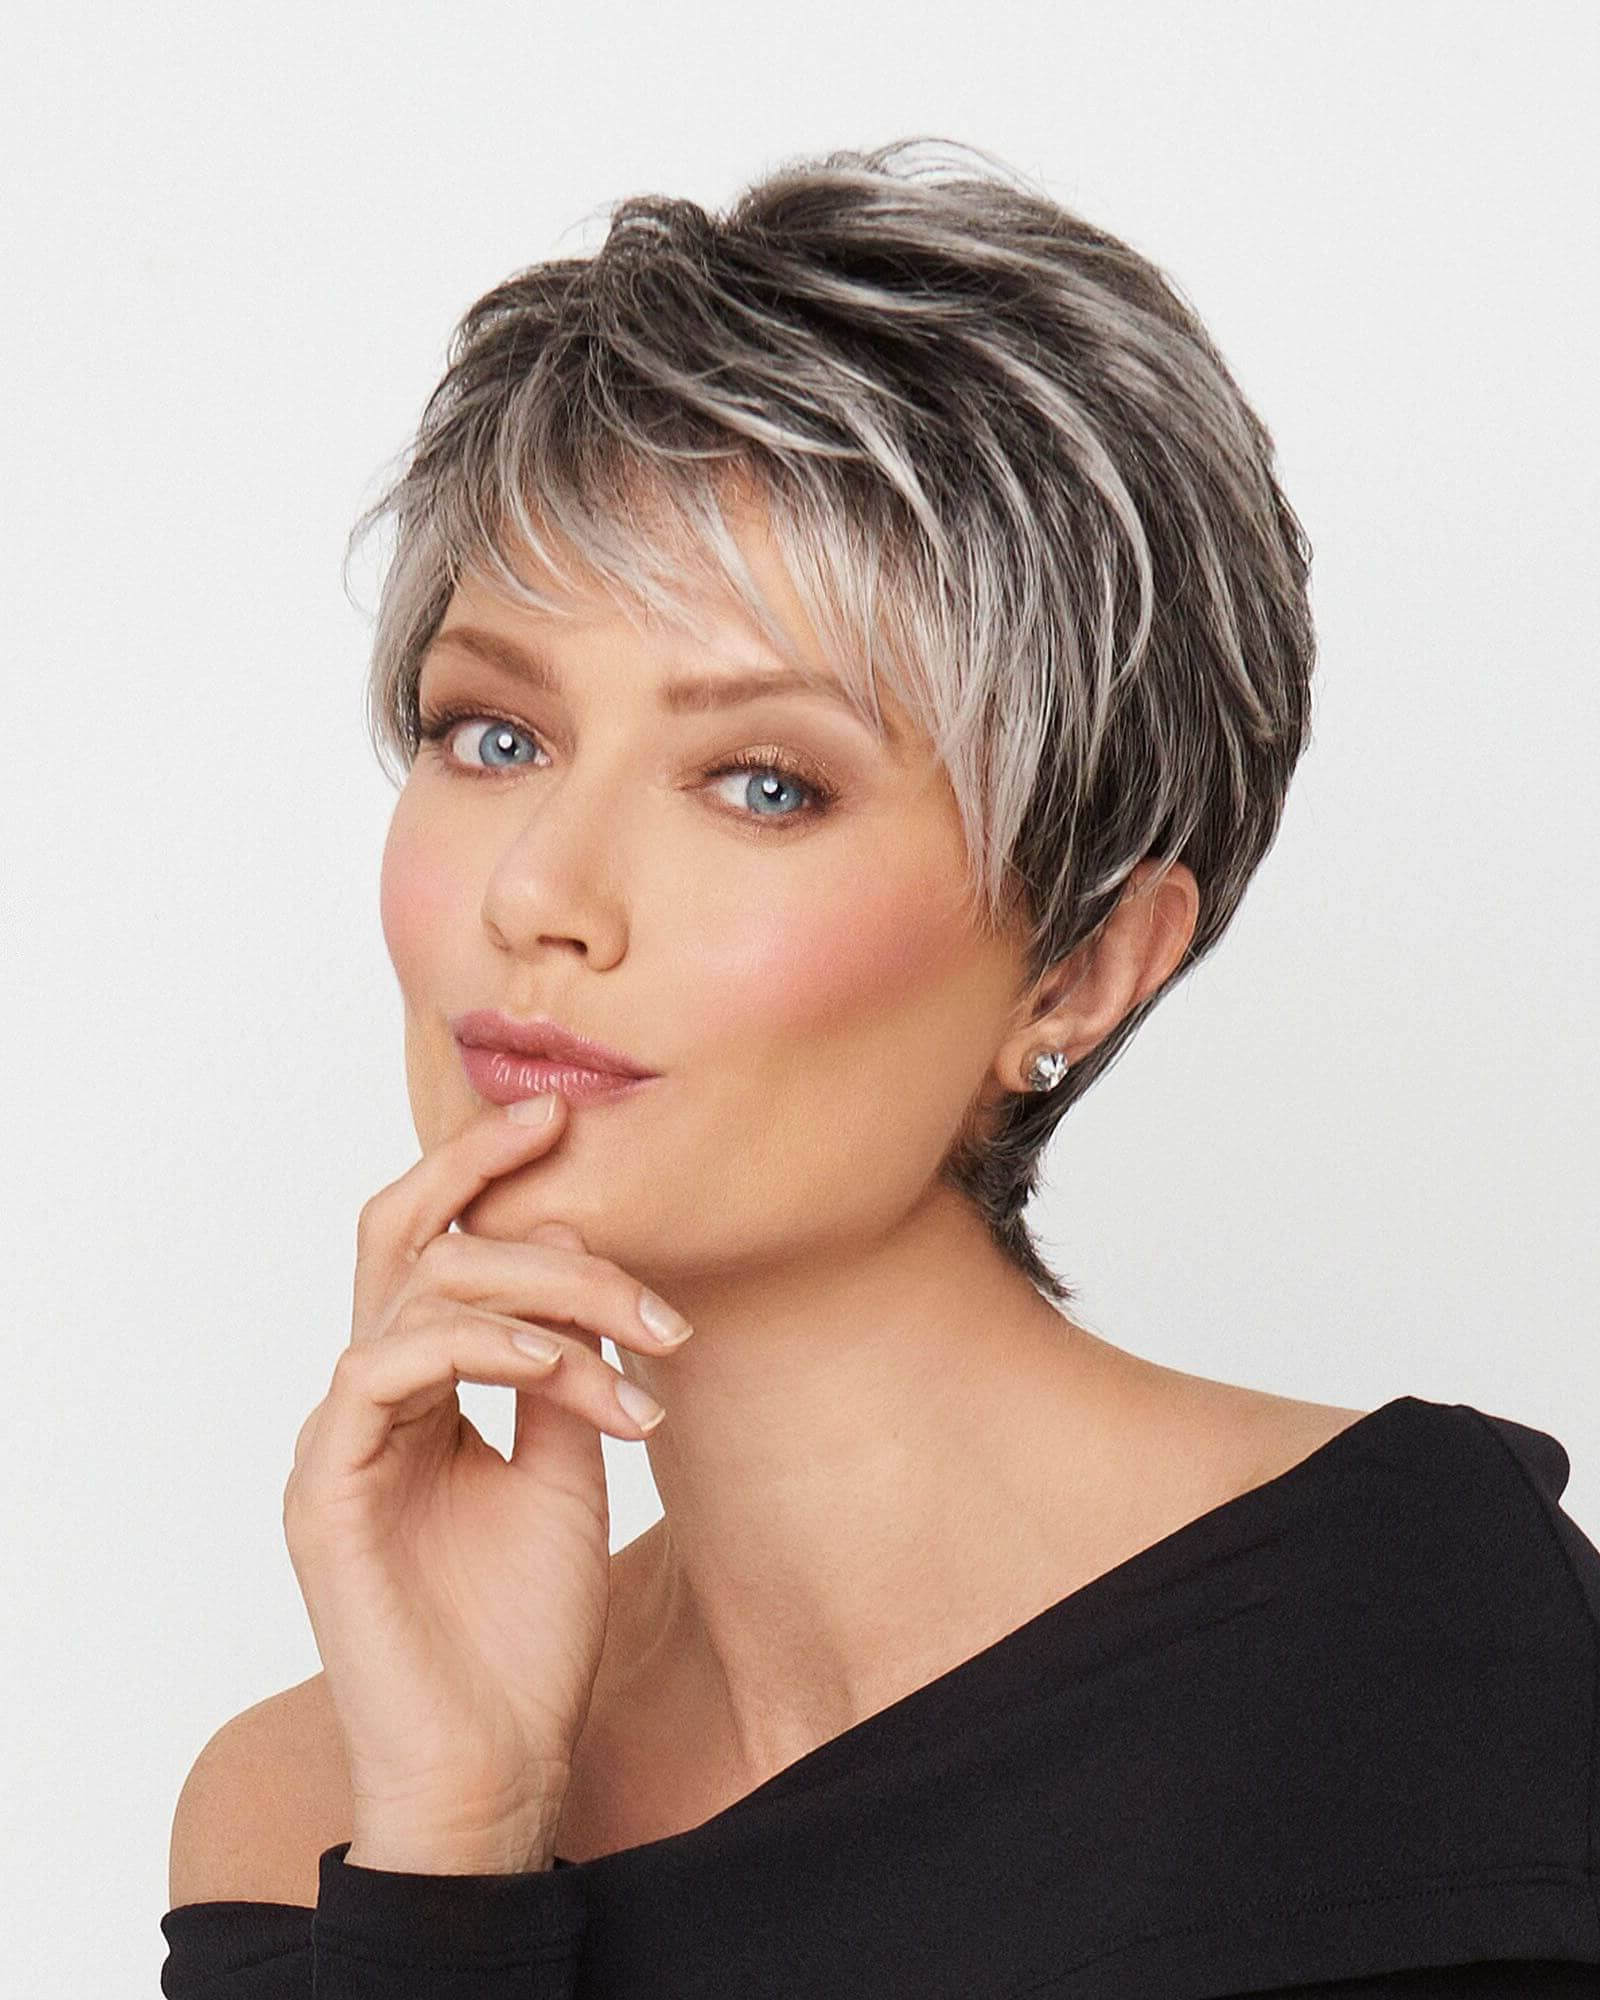 50 Pixie Haircuts You'll See Trending In 2018 Regarding Funky Pixie Undercut Hairstyles (View 8 of 20)